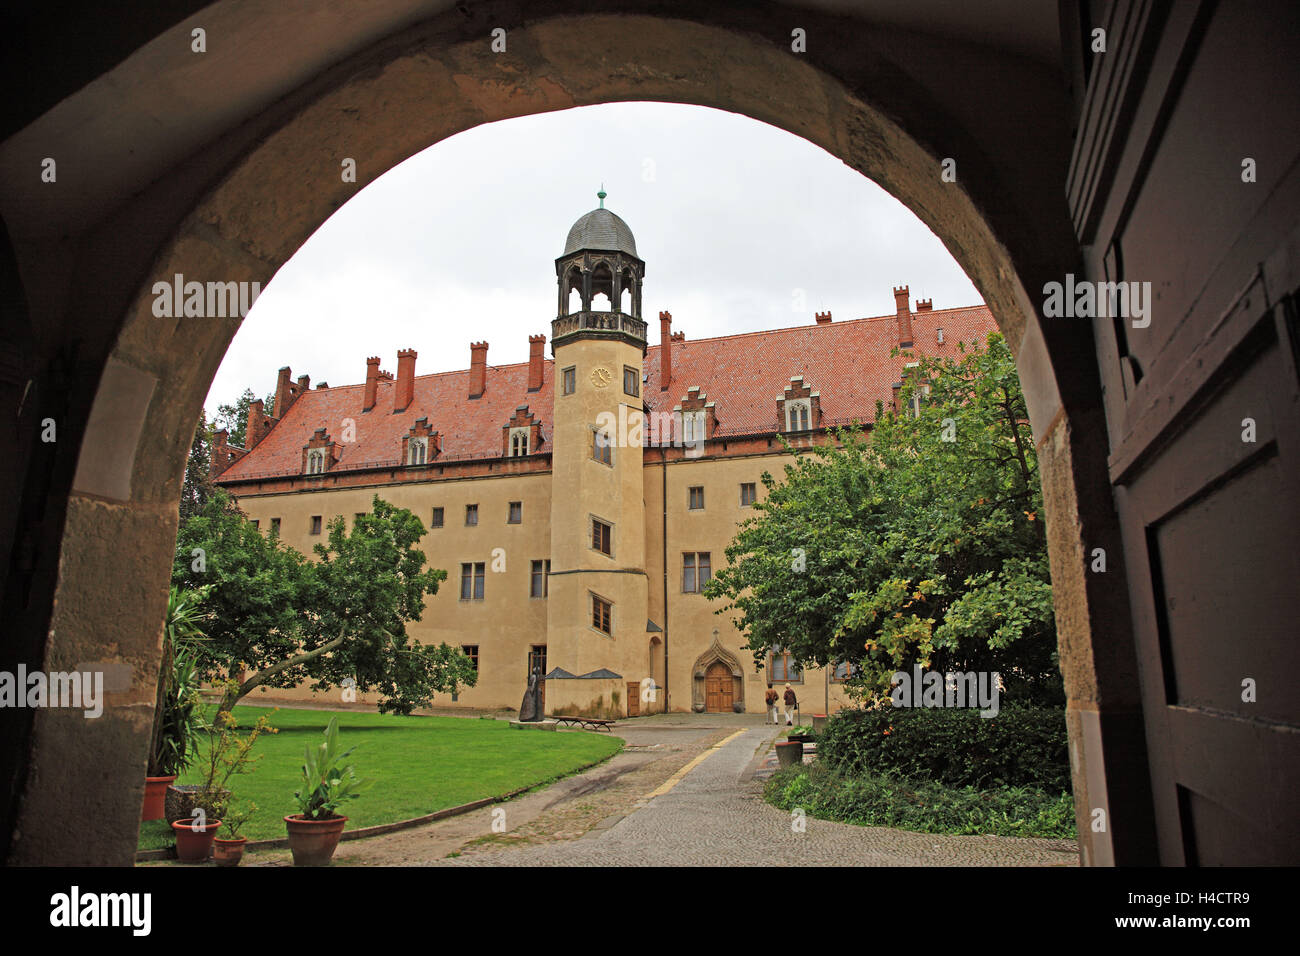 Germany, Saxony clue, Luther Memorials in Wittenberg, Luther House, UNESCO World Heritage - Stock Image